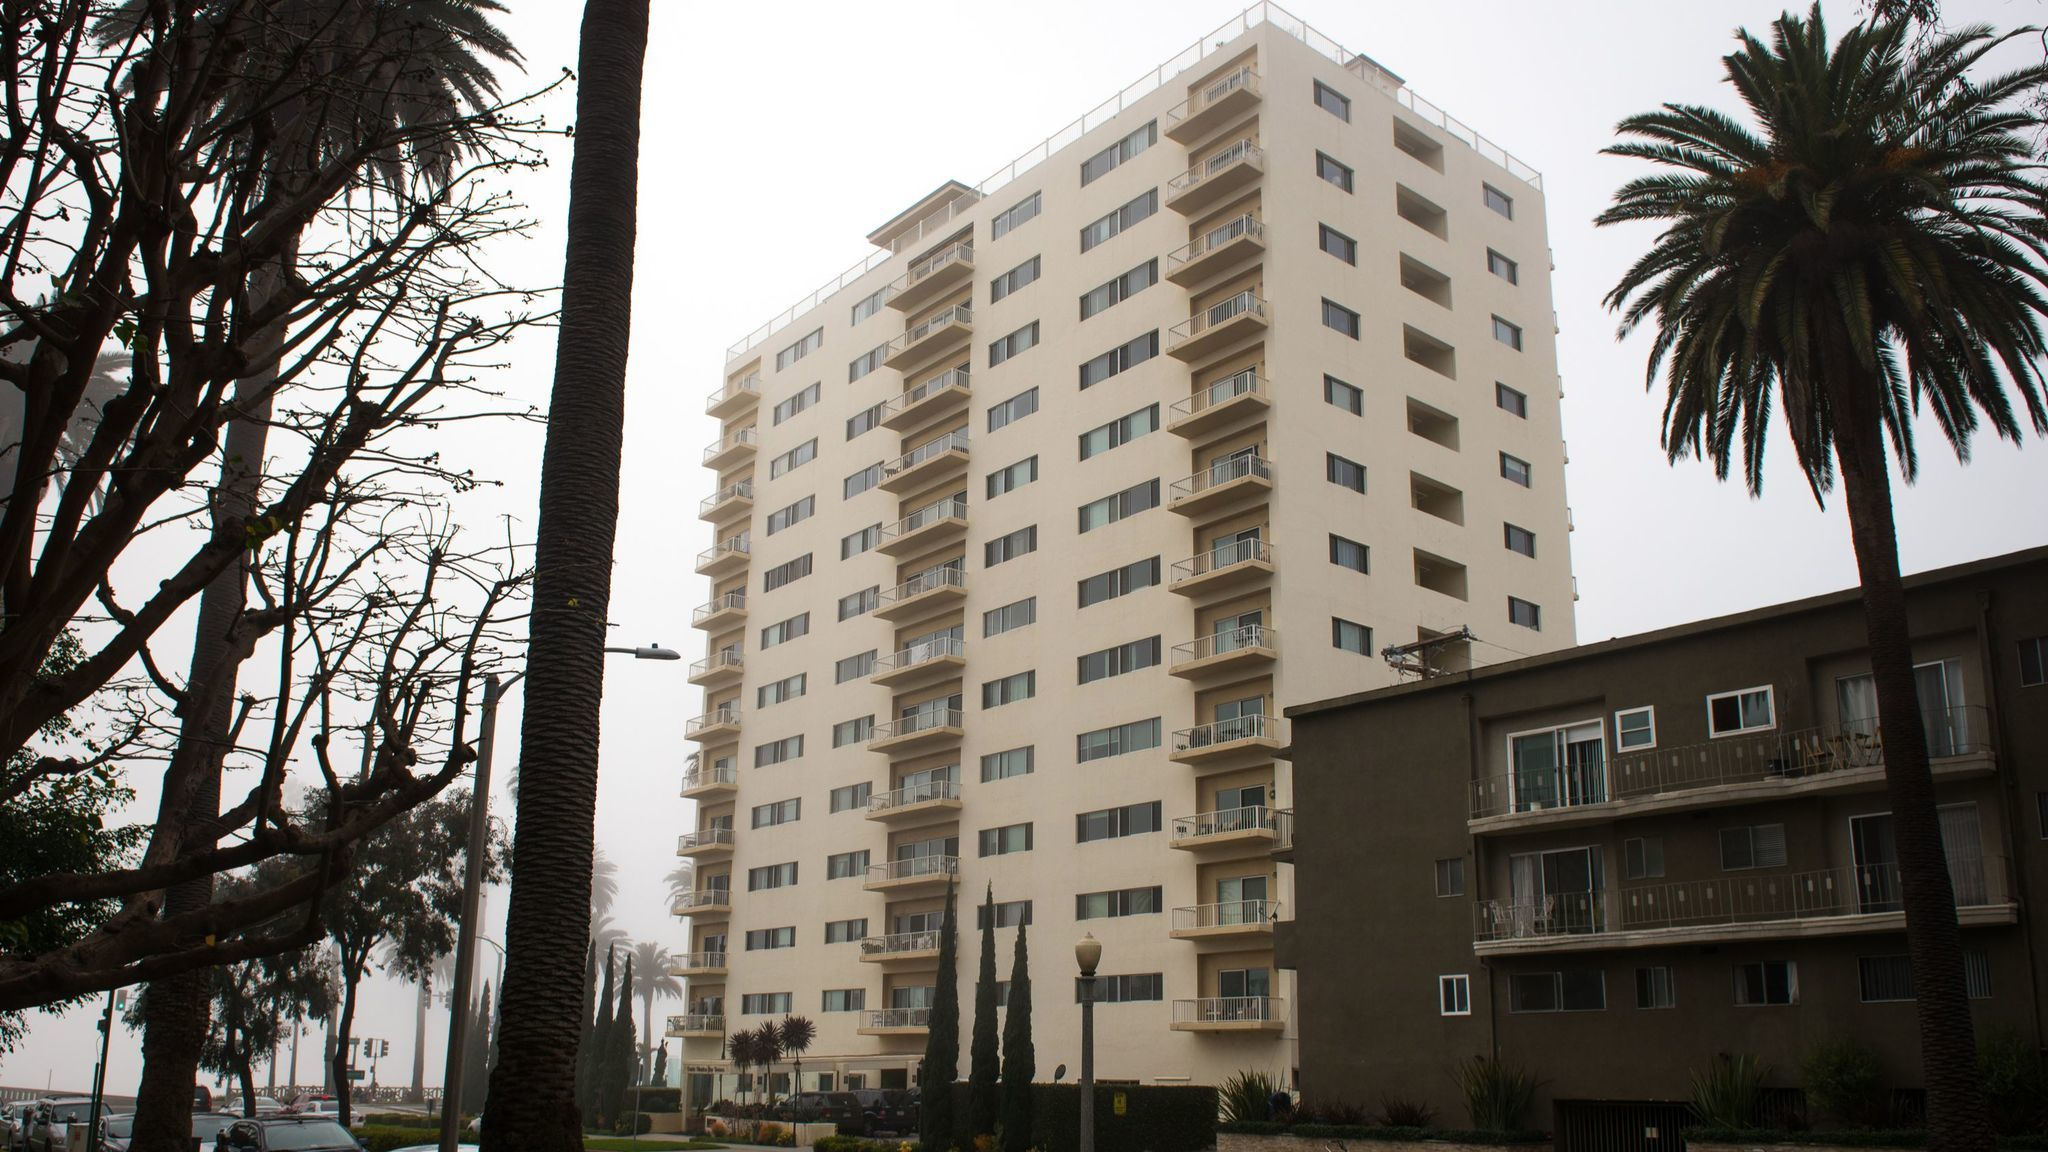 A 13-story condominium, listed by the city as a steel moment-frame building, could be required to undergo a seismic evaluation under a proposed law. City records say there are 79 steel moment-frame buildings that could be vulnerable in an earthquake.